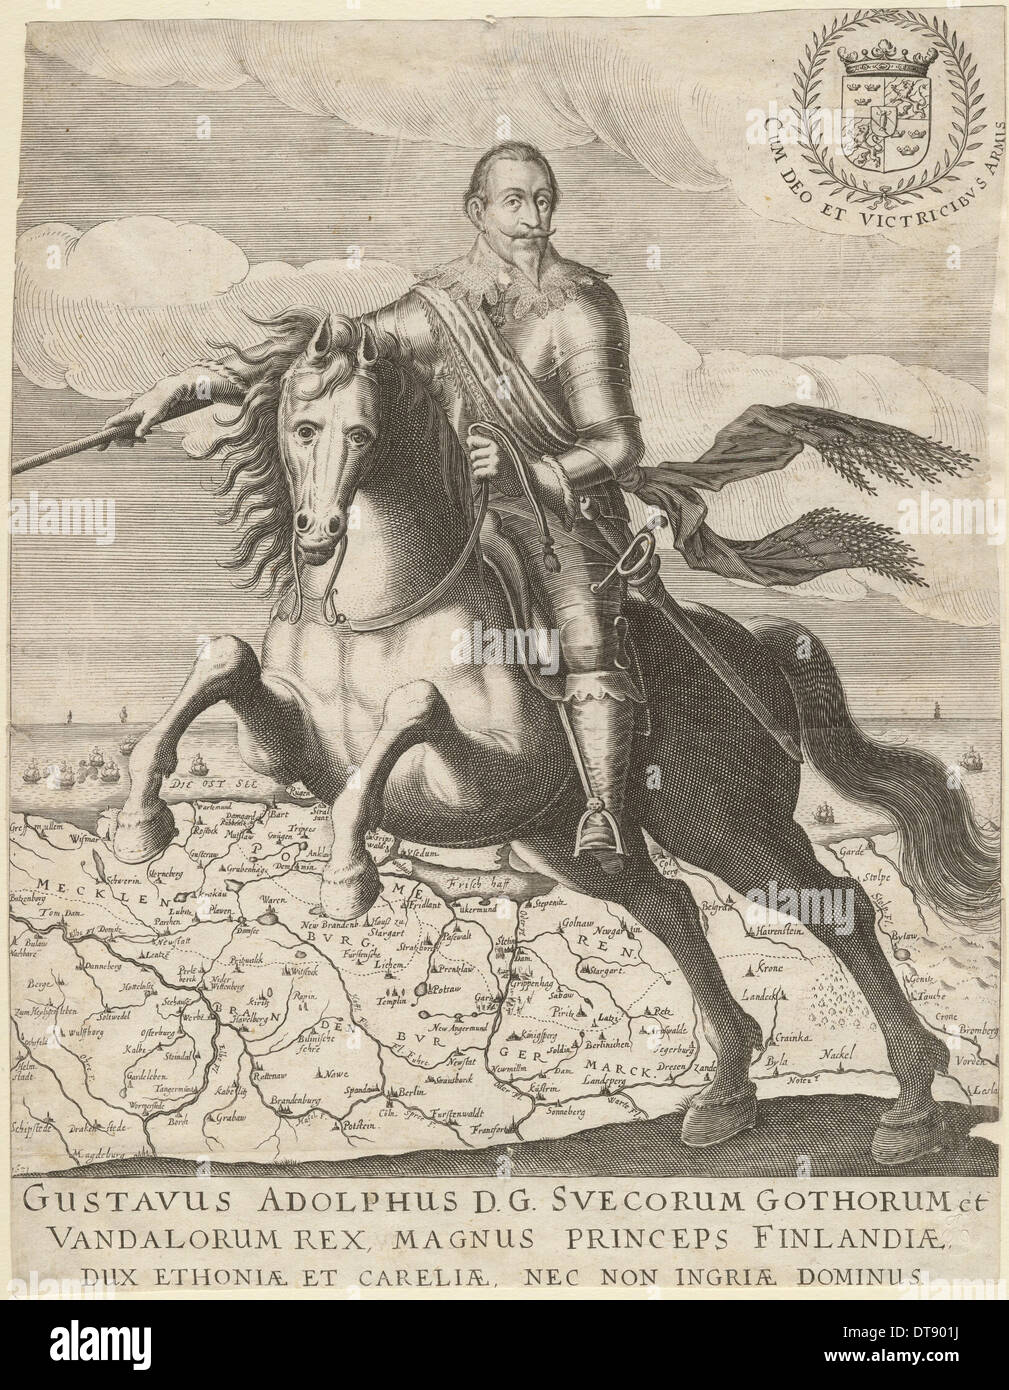 Gustavus Adolphus before the map of Pomerania in the background, 1630. Artist: Anonymous - Stock Image